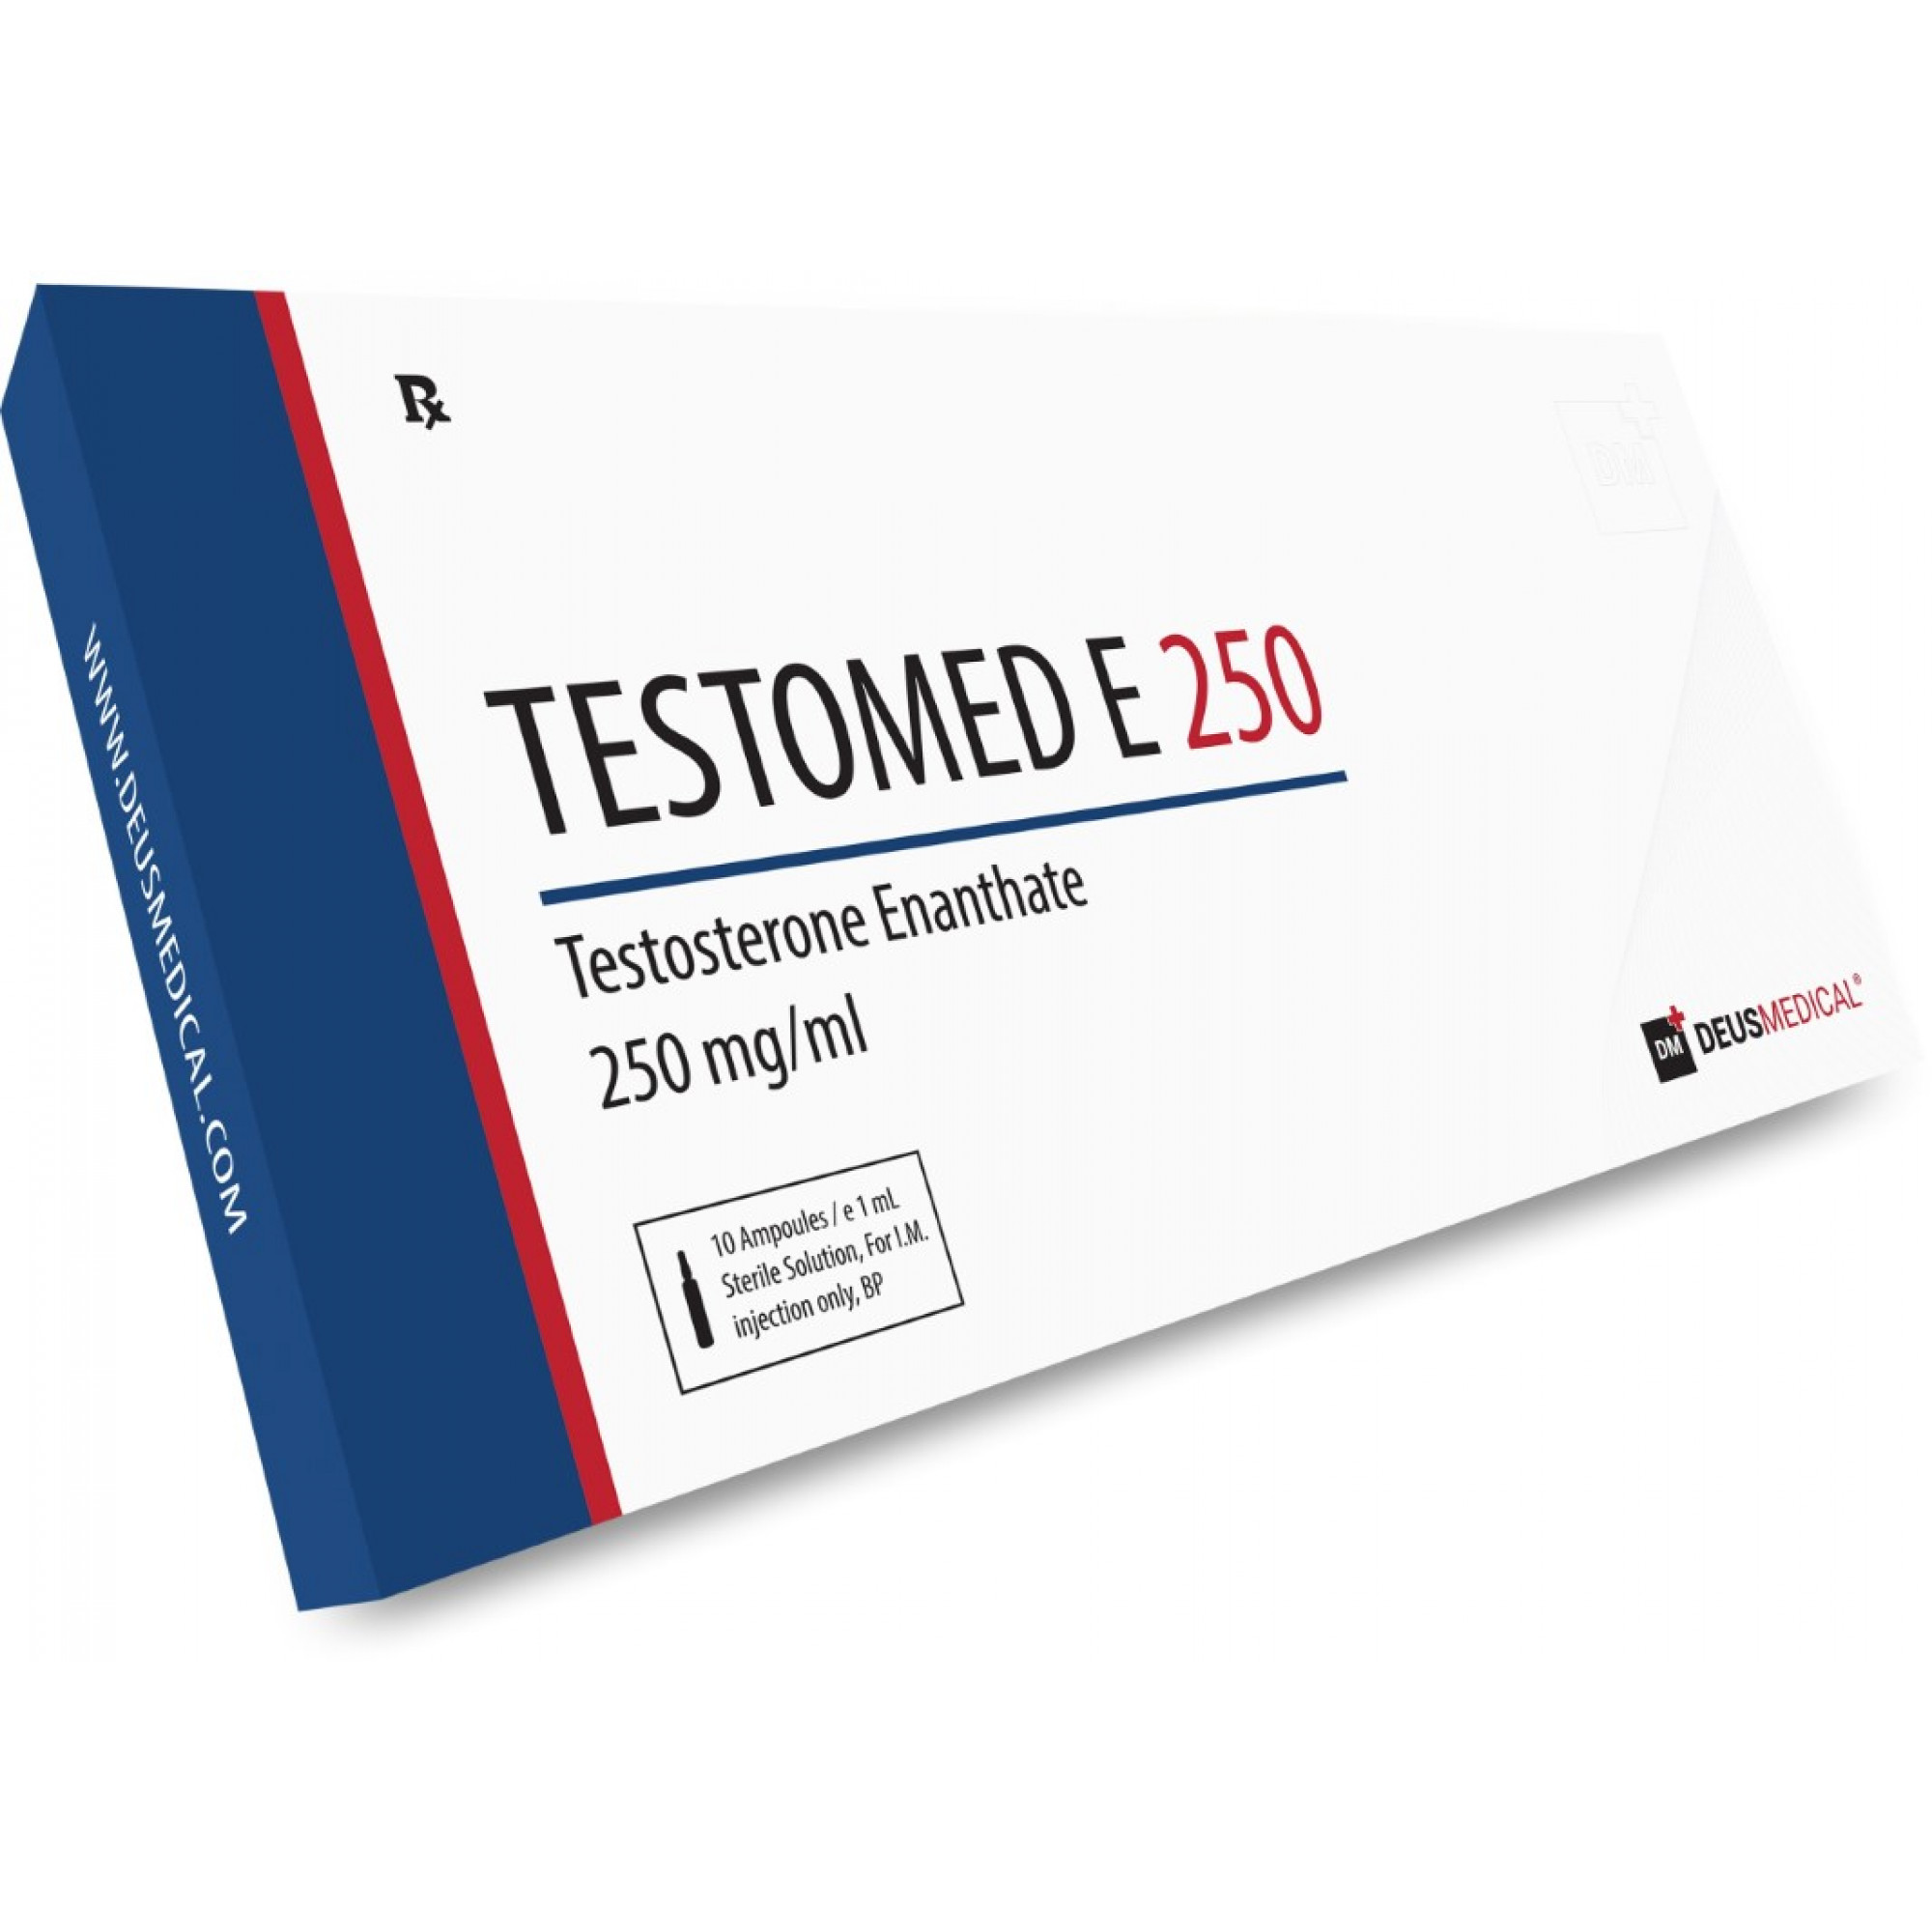 TESTOMED E 250 (Testosterone Enanthate), DEUS MEDICAL, BUY STEROIDS ONLINE - www.DEUSPOWER.com